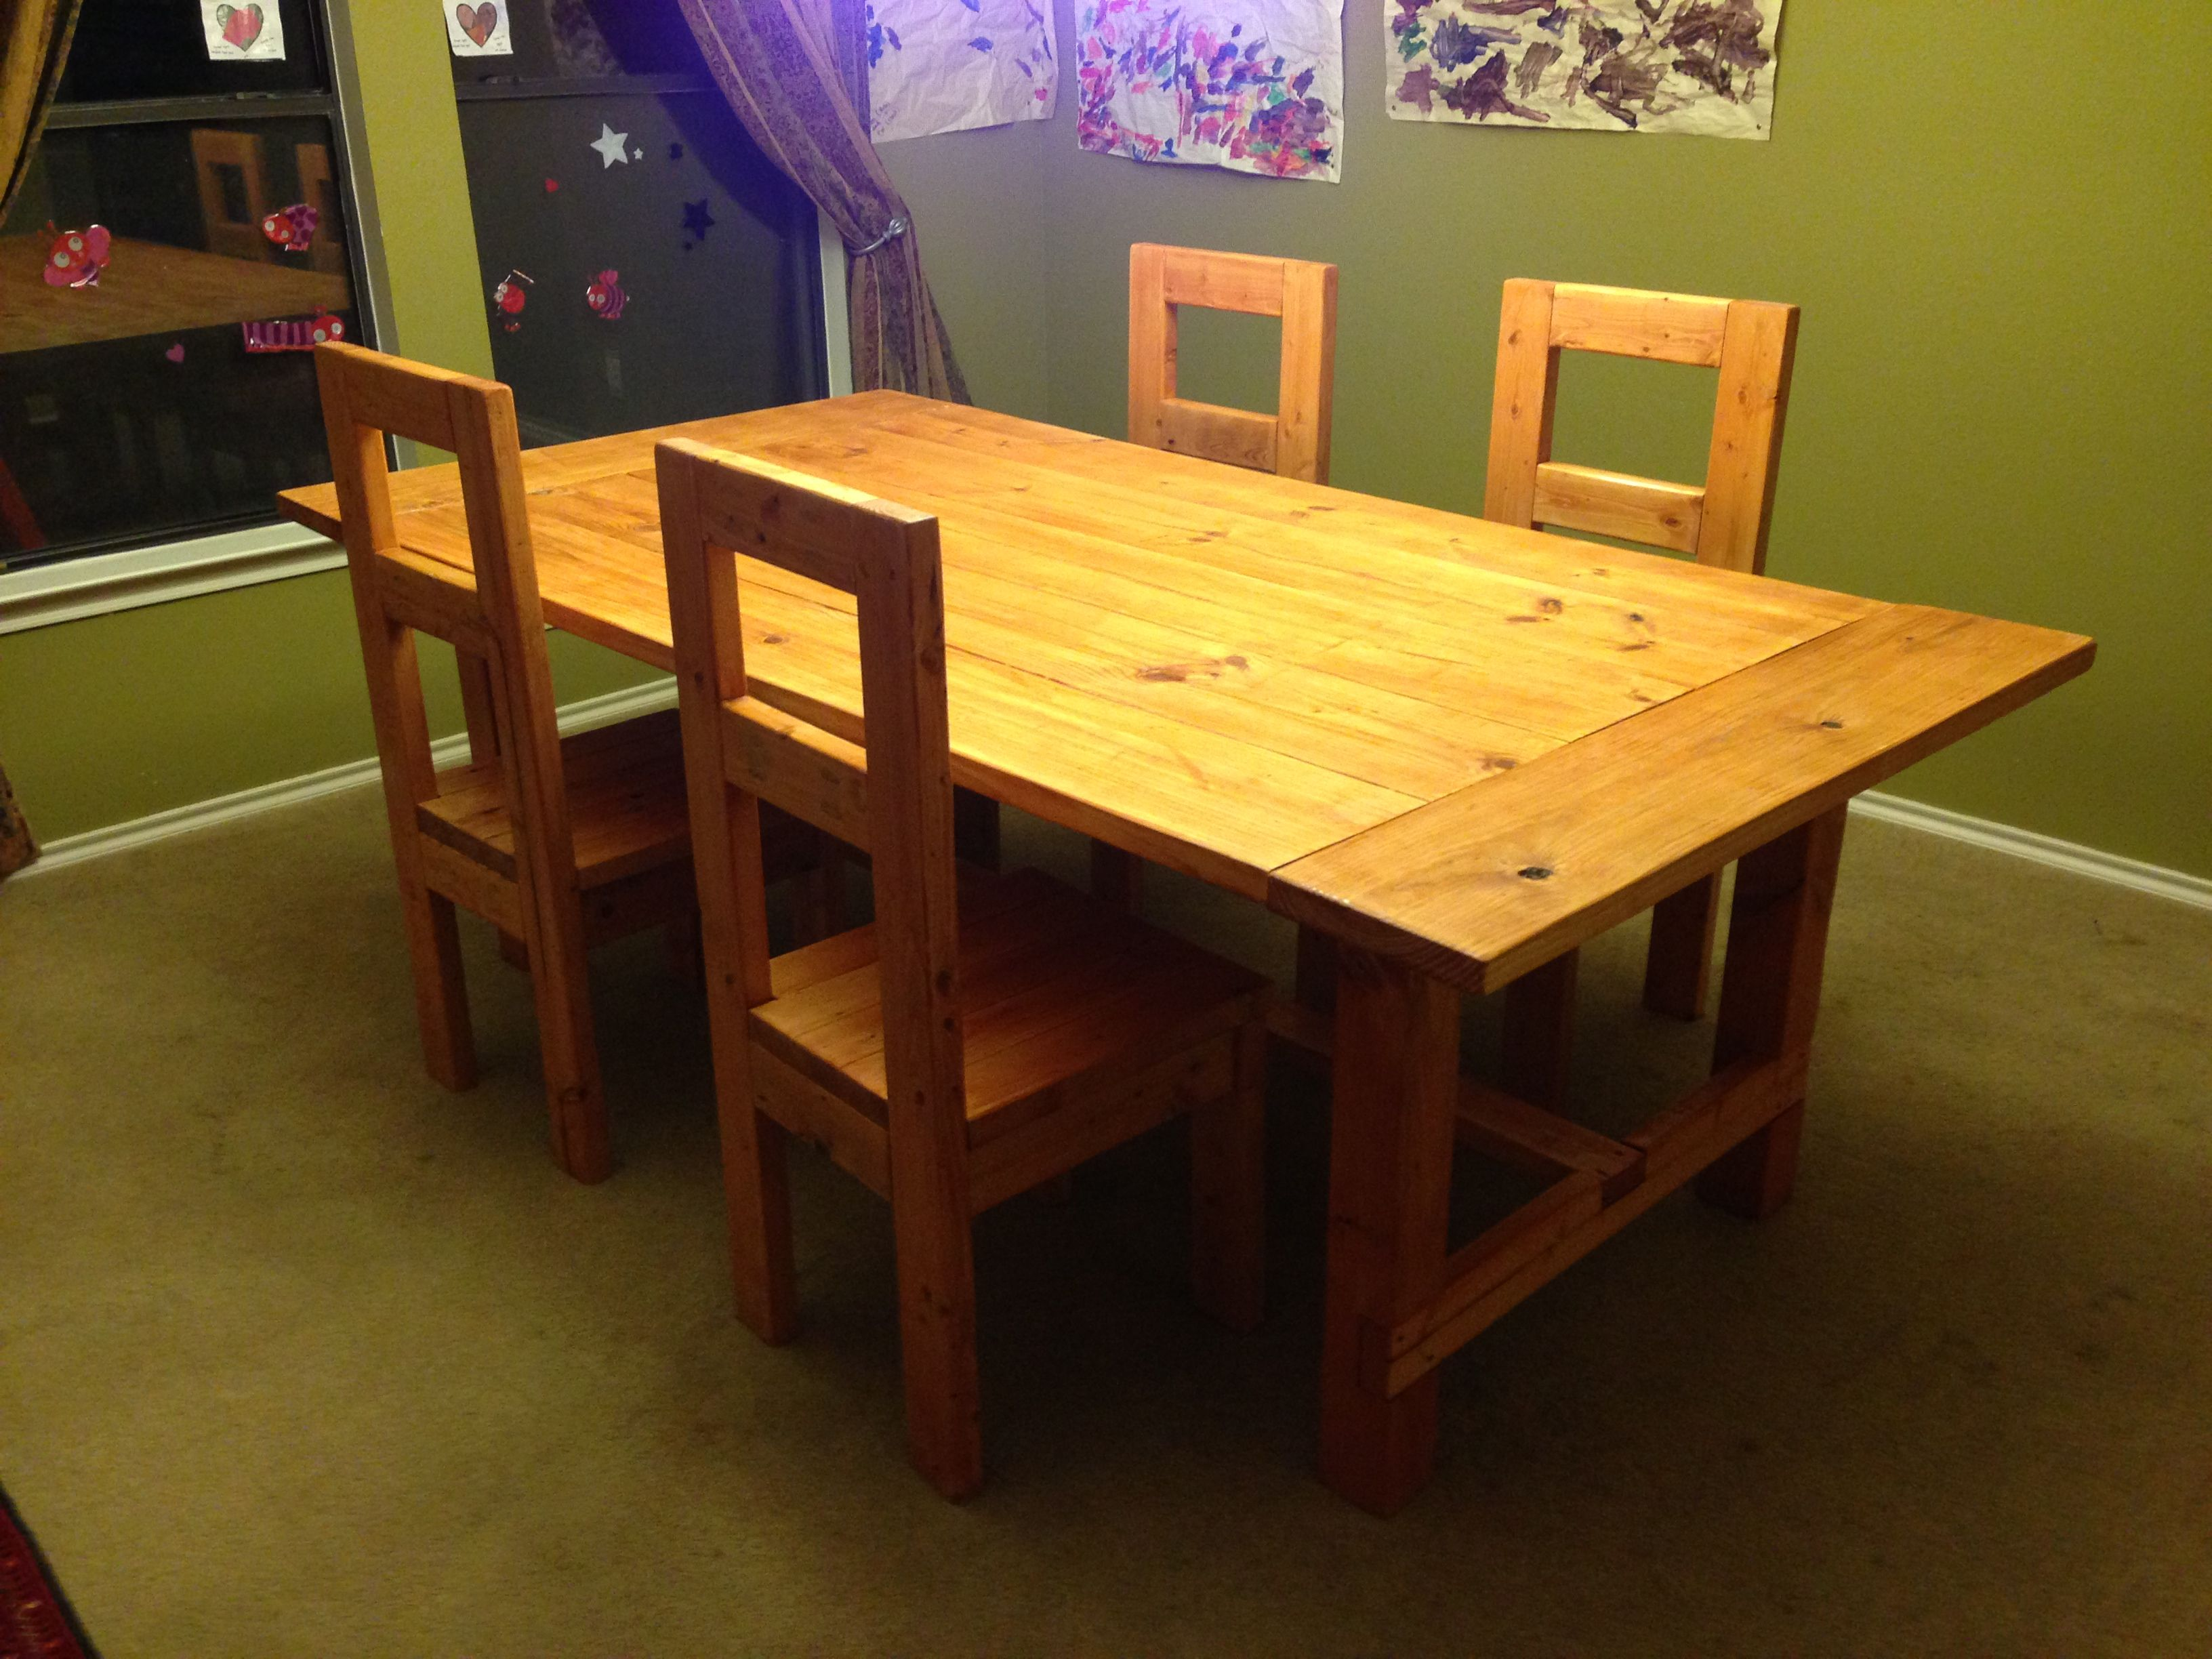 modern farmhouse dining room table with 2x4 chairs   diy projects modern farmhouse dining room table with 2x4 chairs   diy projects      rh   pinterest com